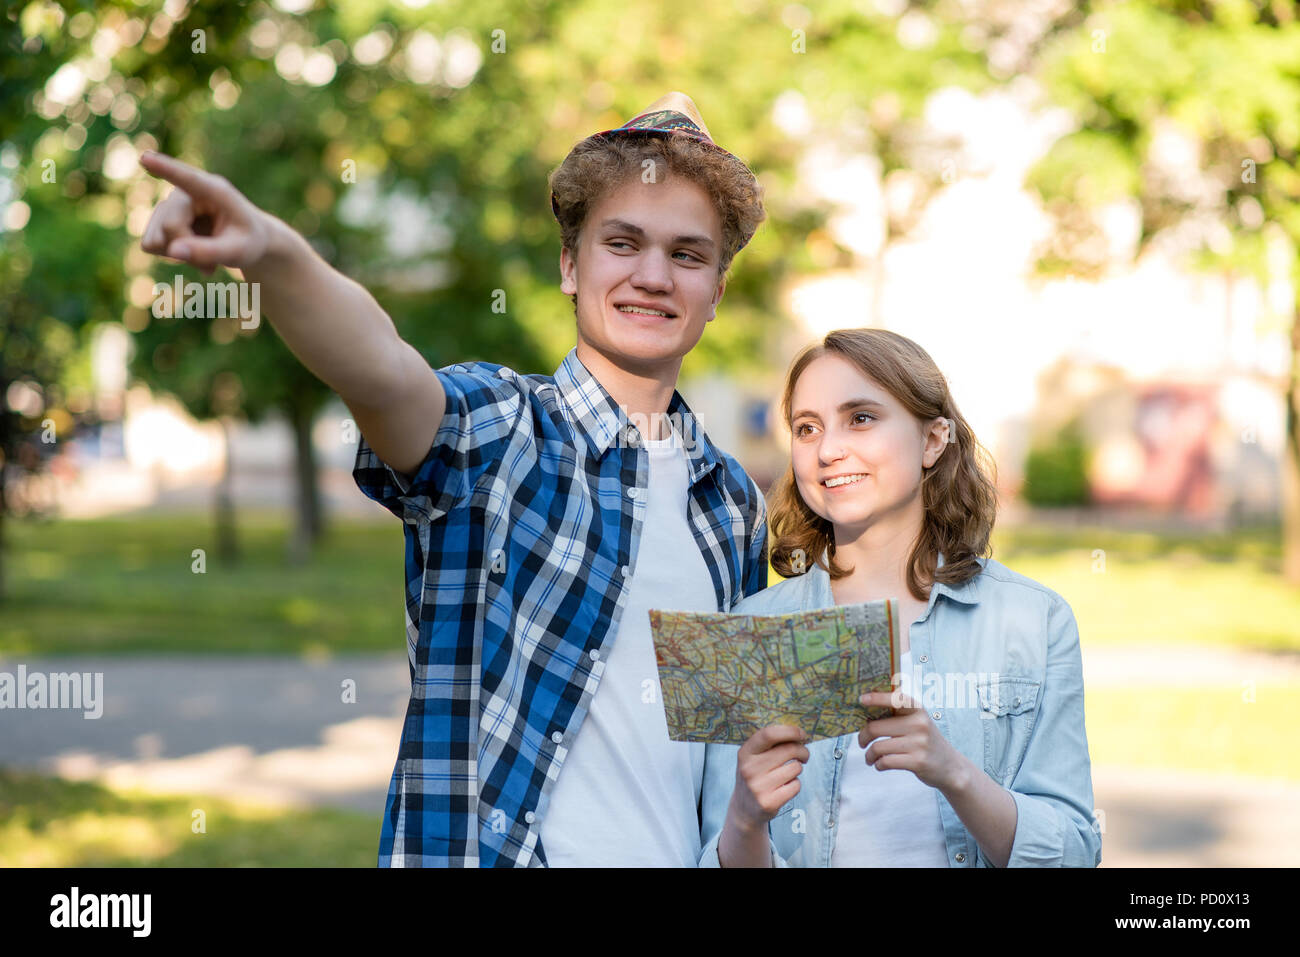 The guy with the girl smiles happily. In summer in the park in nature. In his hands holds a road map. With a gesture of the hand and shows the direction of movement. Young Tourists on vacation. - Stock Image